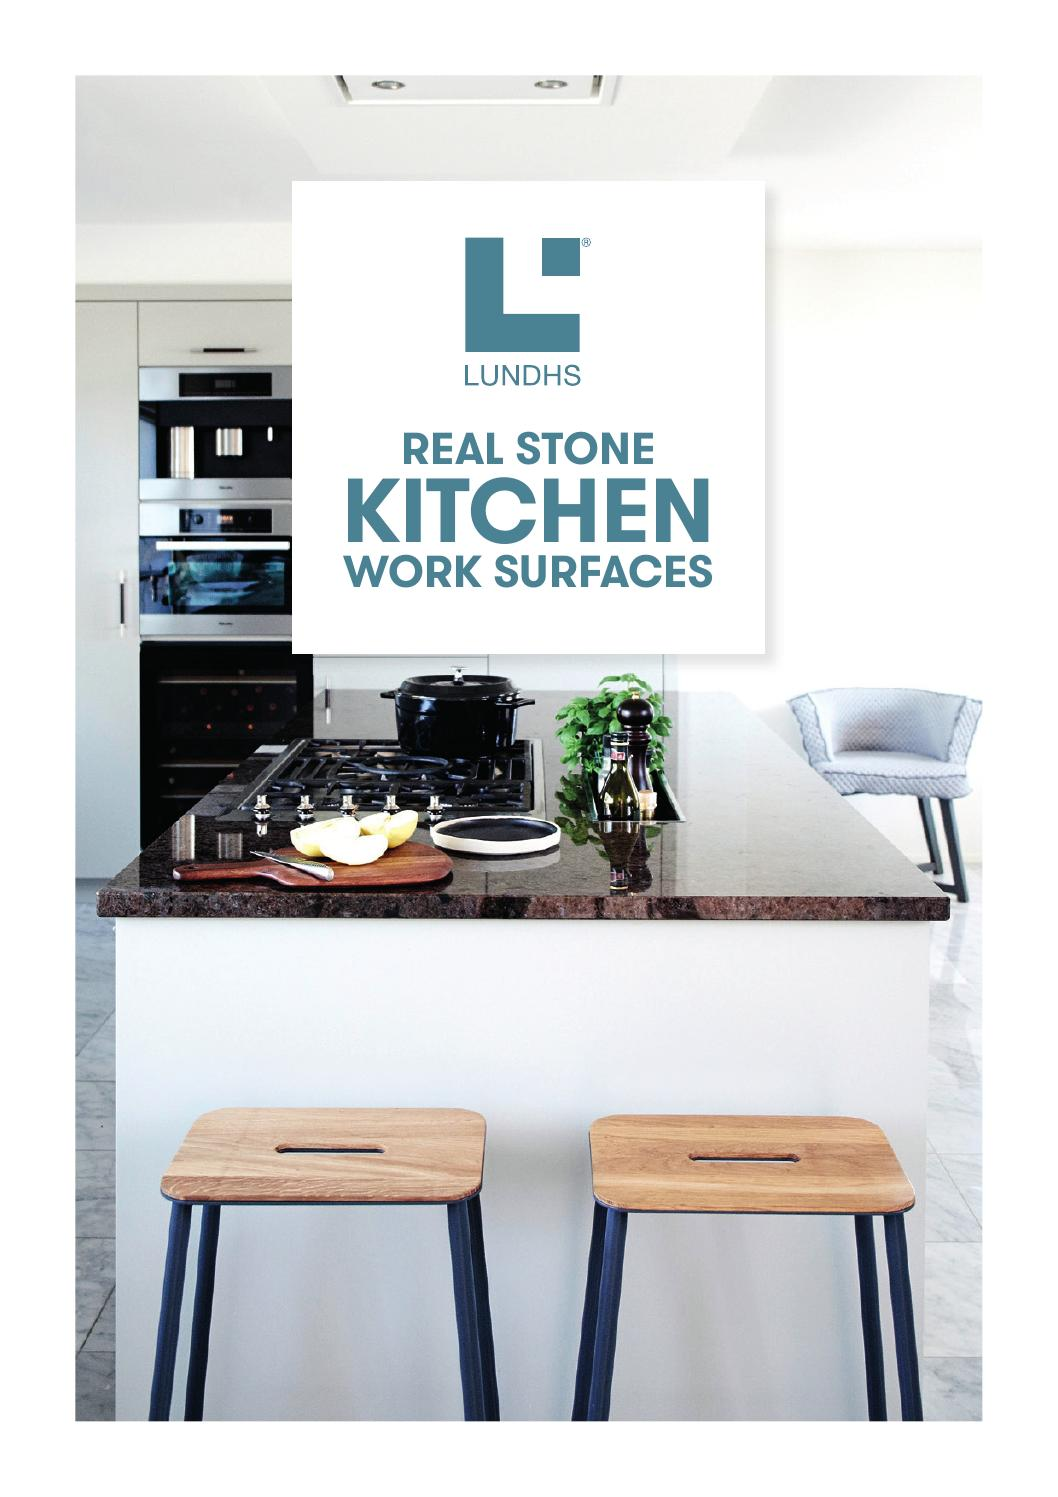 Lundhs Real Stone Kitchen Work Surfaces By Janne Magnussen